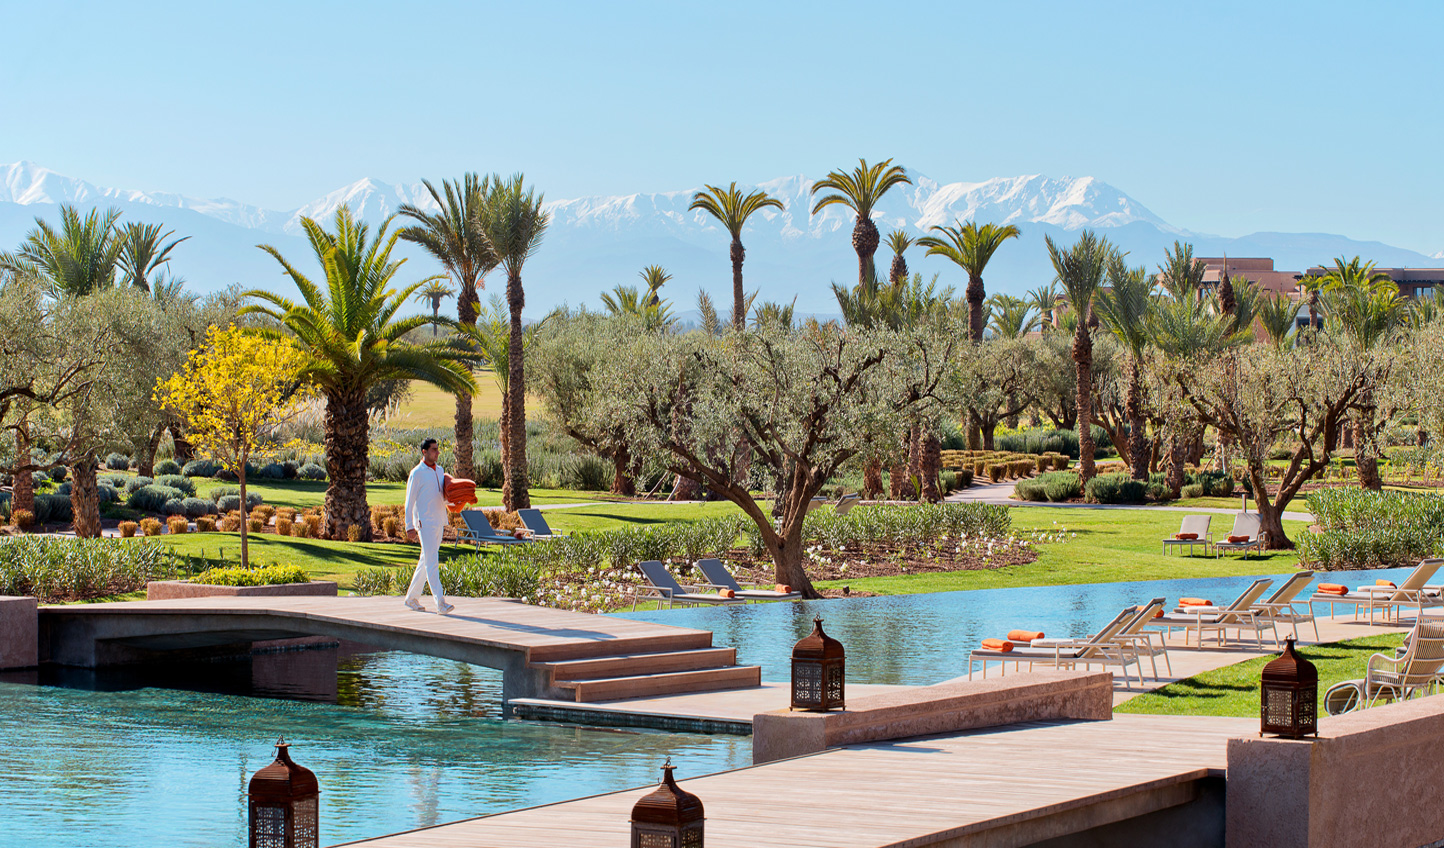 Feeling the blazing heat of the Moroccan sun and seeing snow capped mountains is such a surreal experience